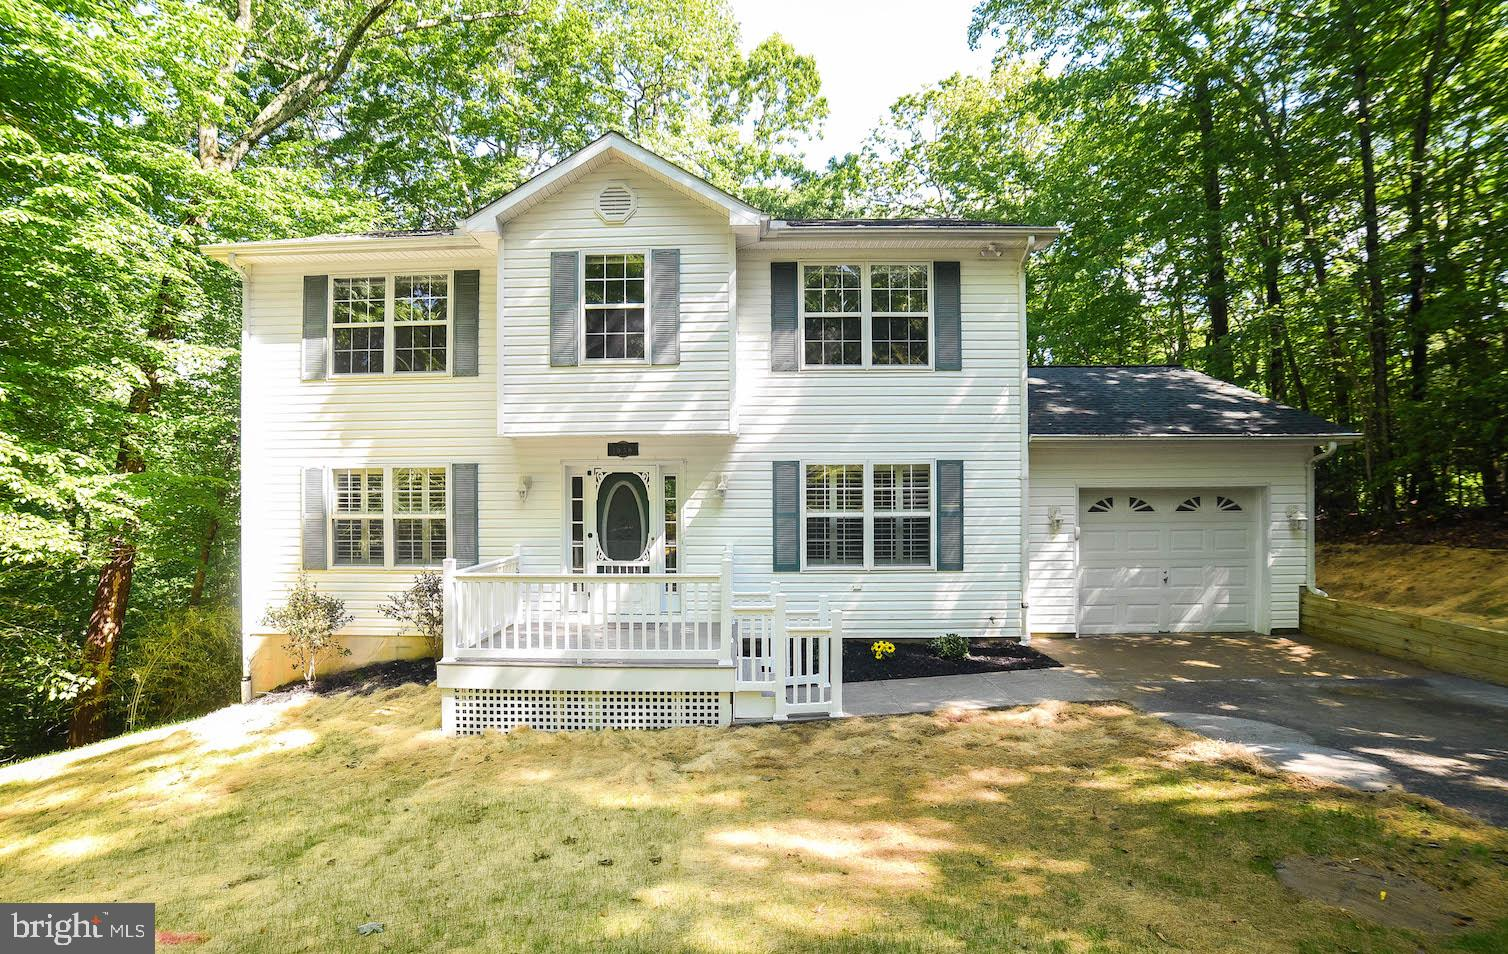 Move In Ready! This 4 bedroom 2 1/2 bath home has been freshly painted, new appliances and hardwood